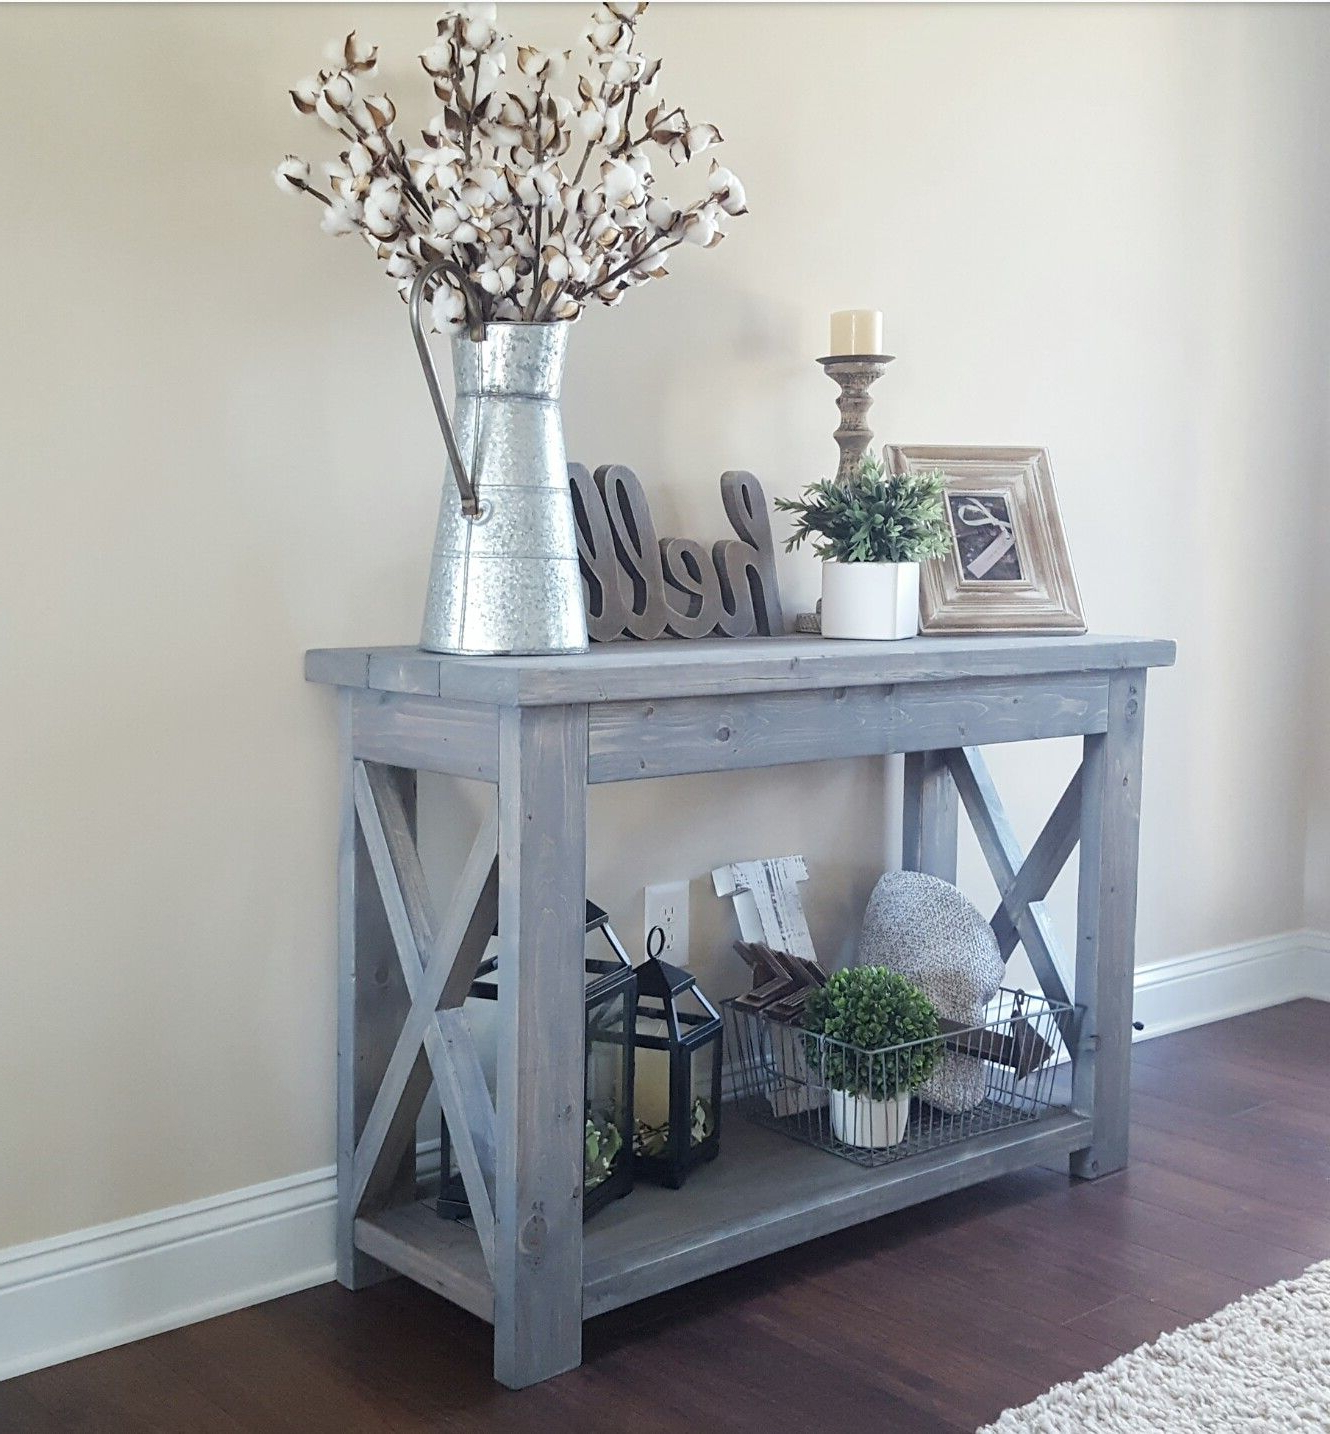 2018 Natural Wood Mirrored Media Console Tables With Regard To Modified Ana Whites Rustic X Console Table, And Used Minwax Classic (View 1 of 20)